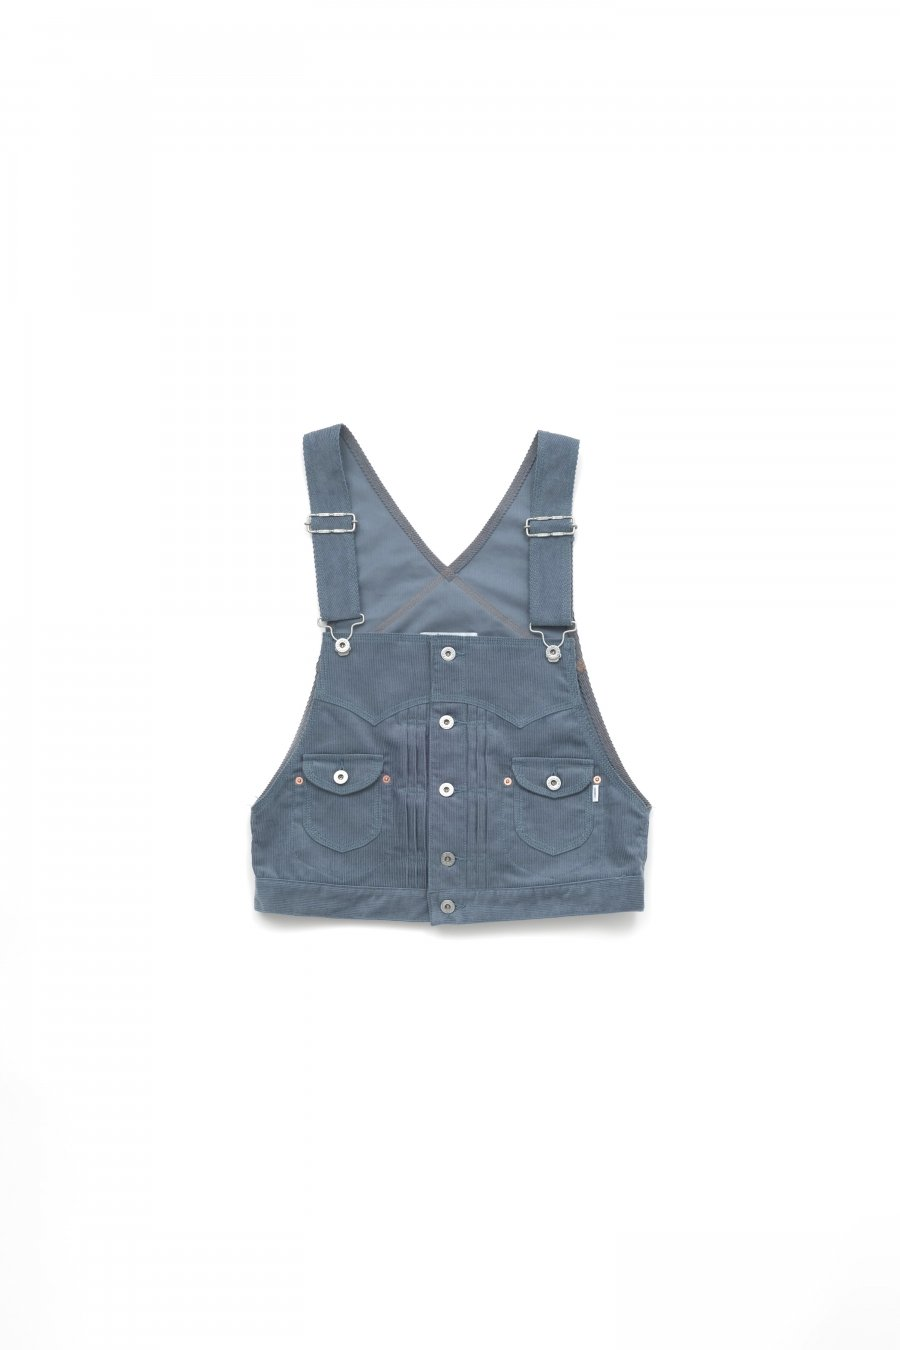 SUGARHILL  CORDUROY VEST(BLUE)<img class='new_mark_img2' src='https://img.shop-pro.jp/img/new/icons15.gif' style='border:none;display:inline;margin:0px;padding:0px;width:auto;' />